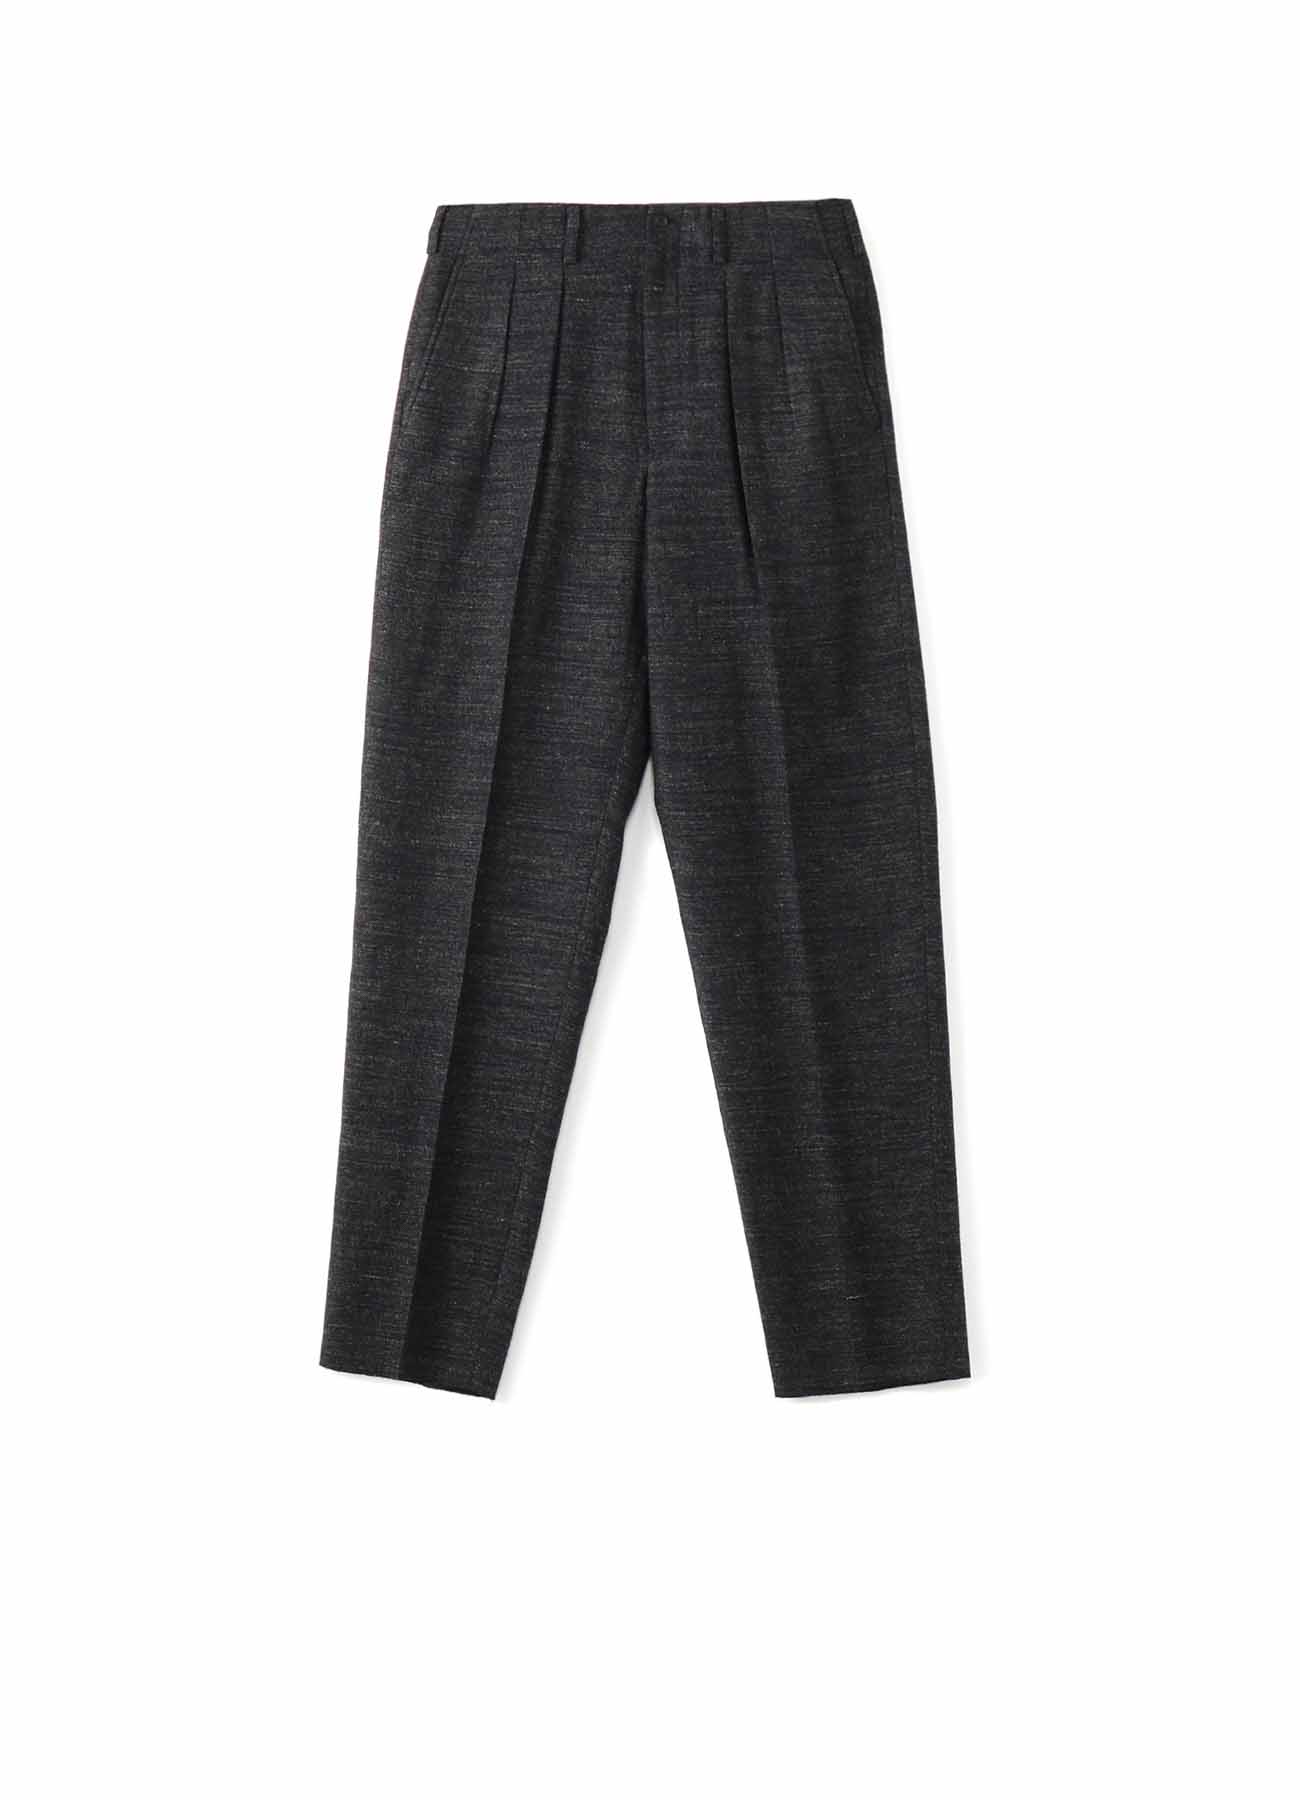 COSTUME D'HOMME WOOL/LINEN TWILL 2TUCK PANTS